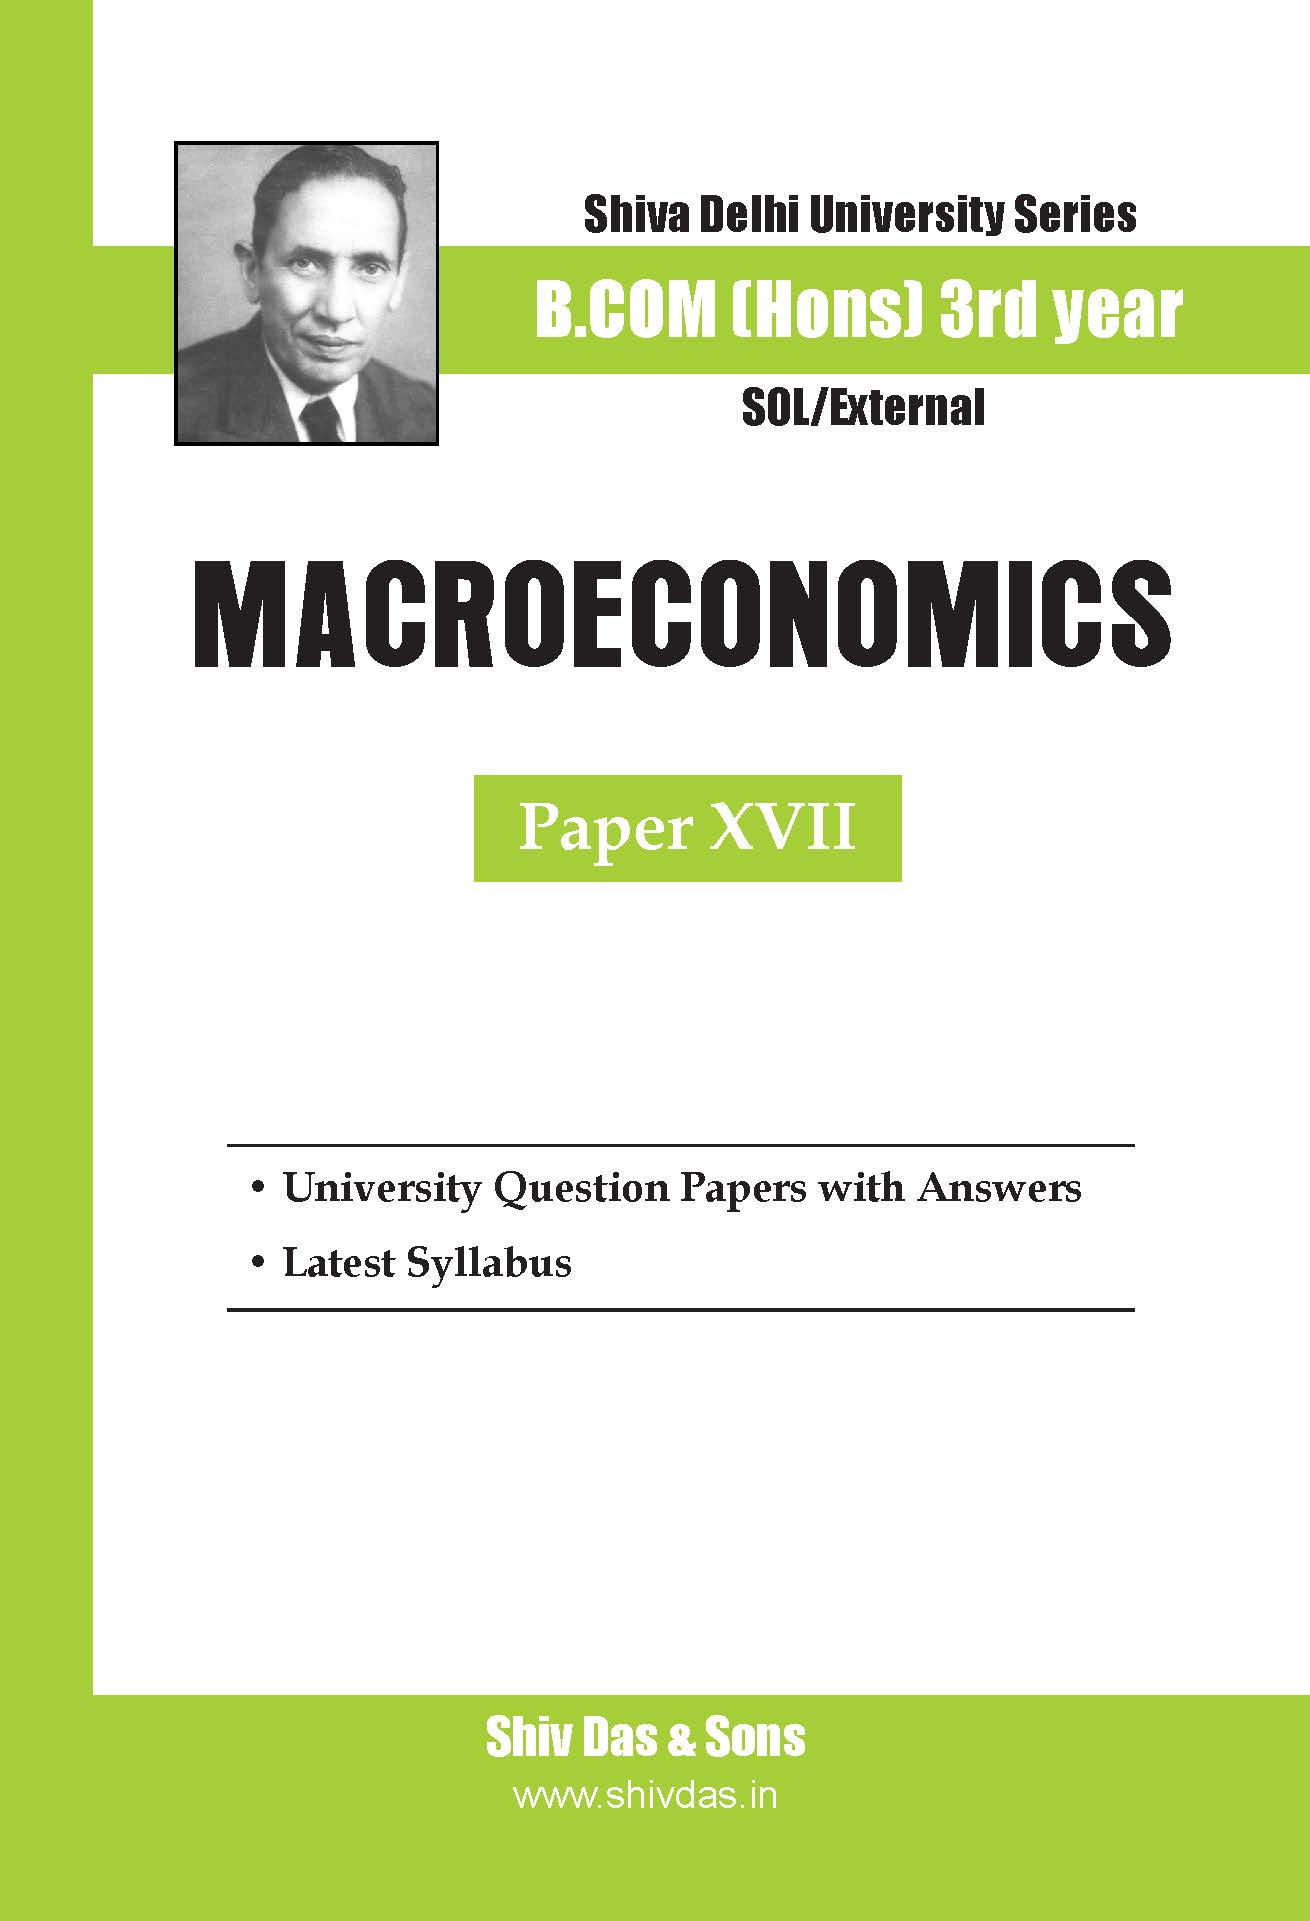 B.Com Hons-SOL/External-3rd Year-Macroeconomics-Shiv Das-Delhi University Series